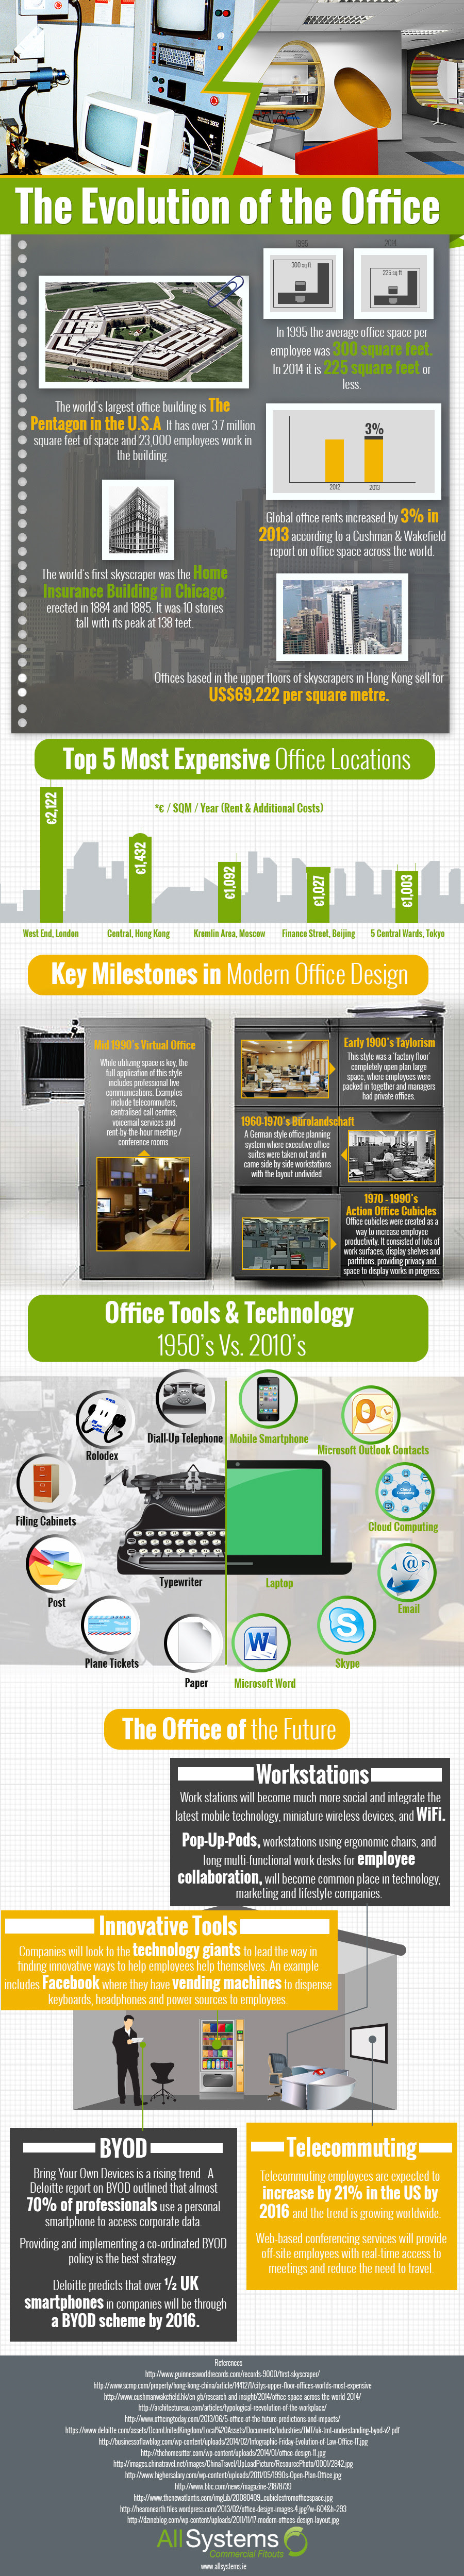 Infographic by: The Evolution of the Office